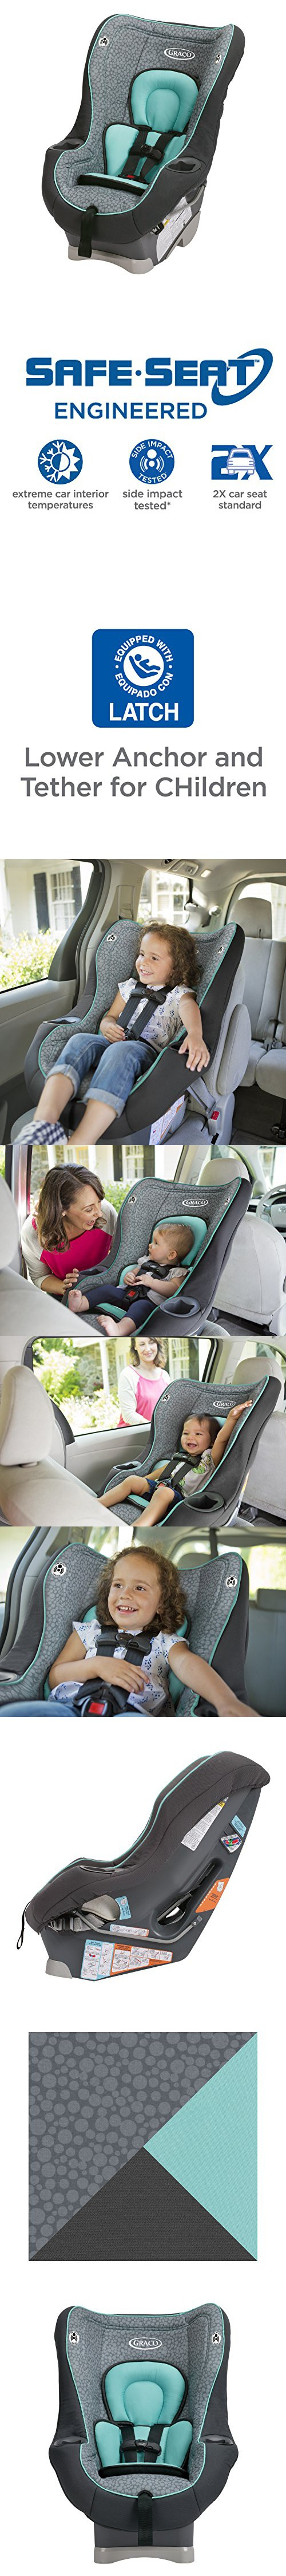 Graco My Ride 65 Convertible Car Seat Sully